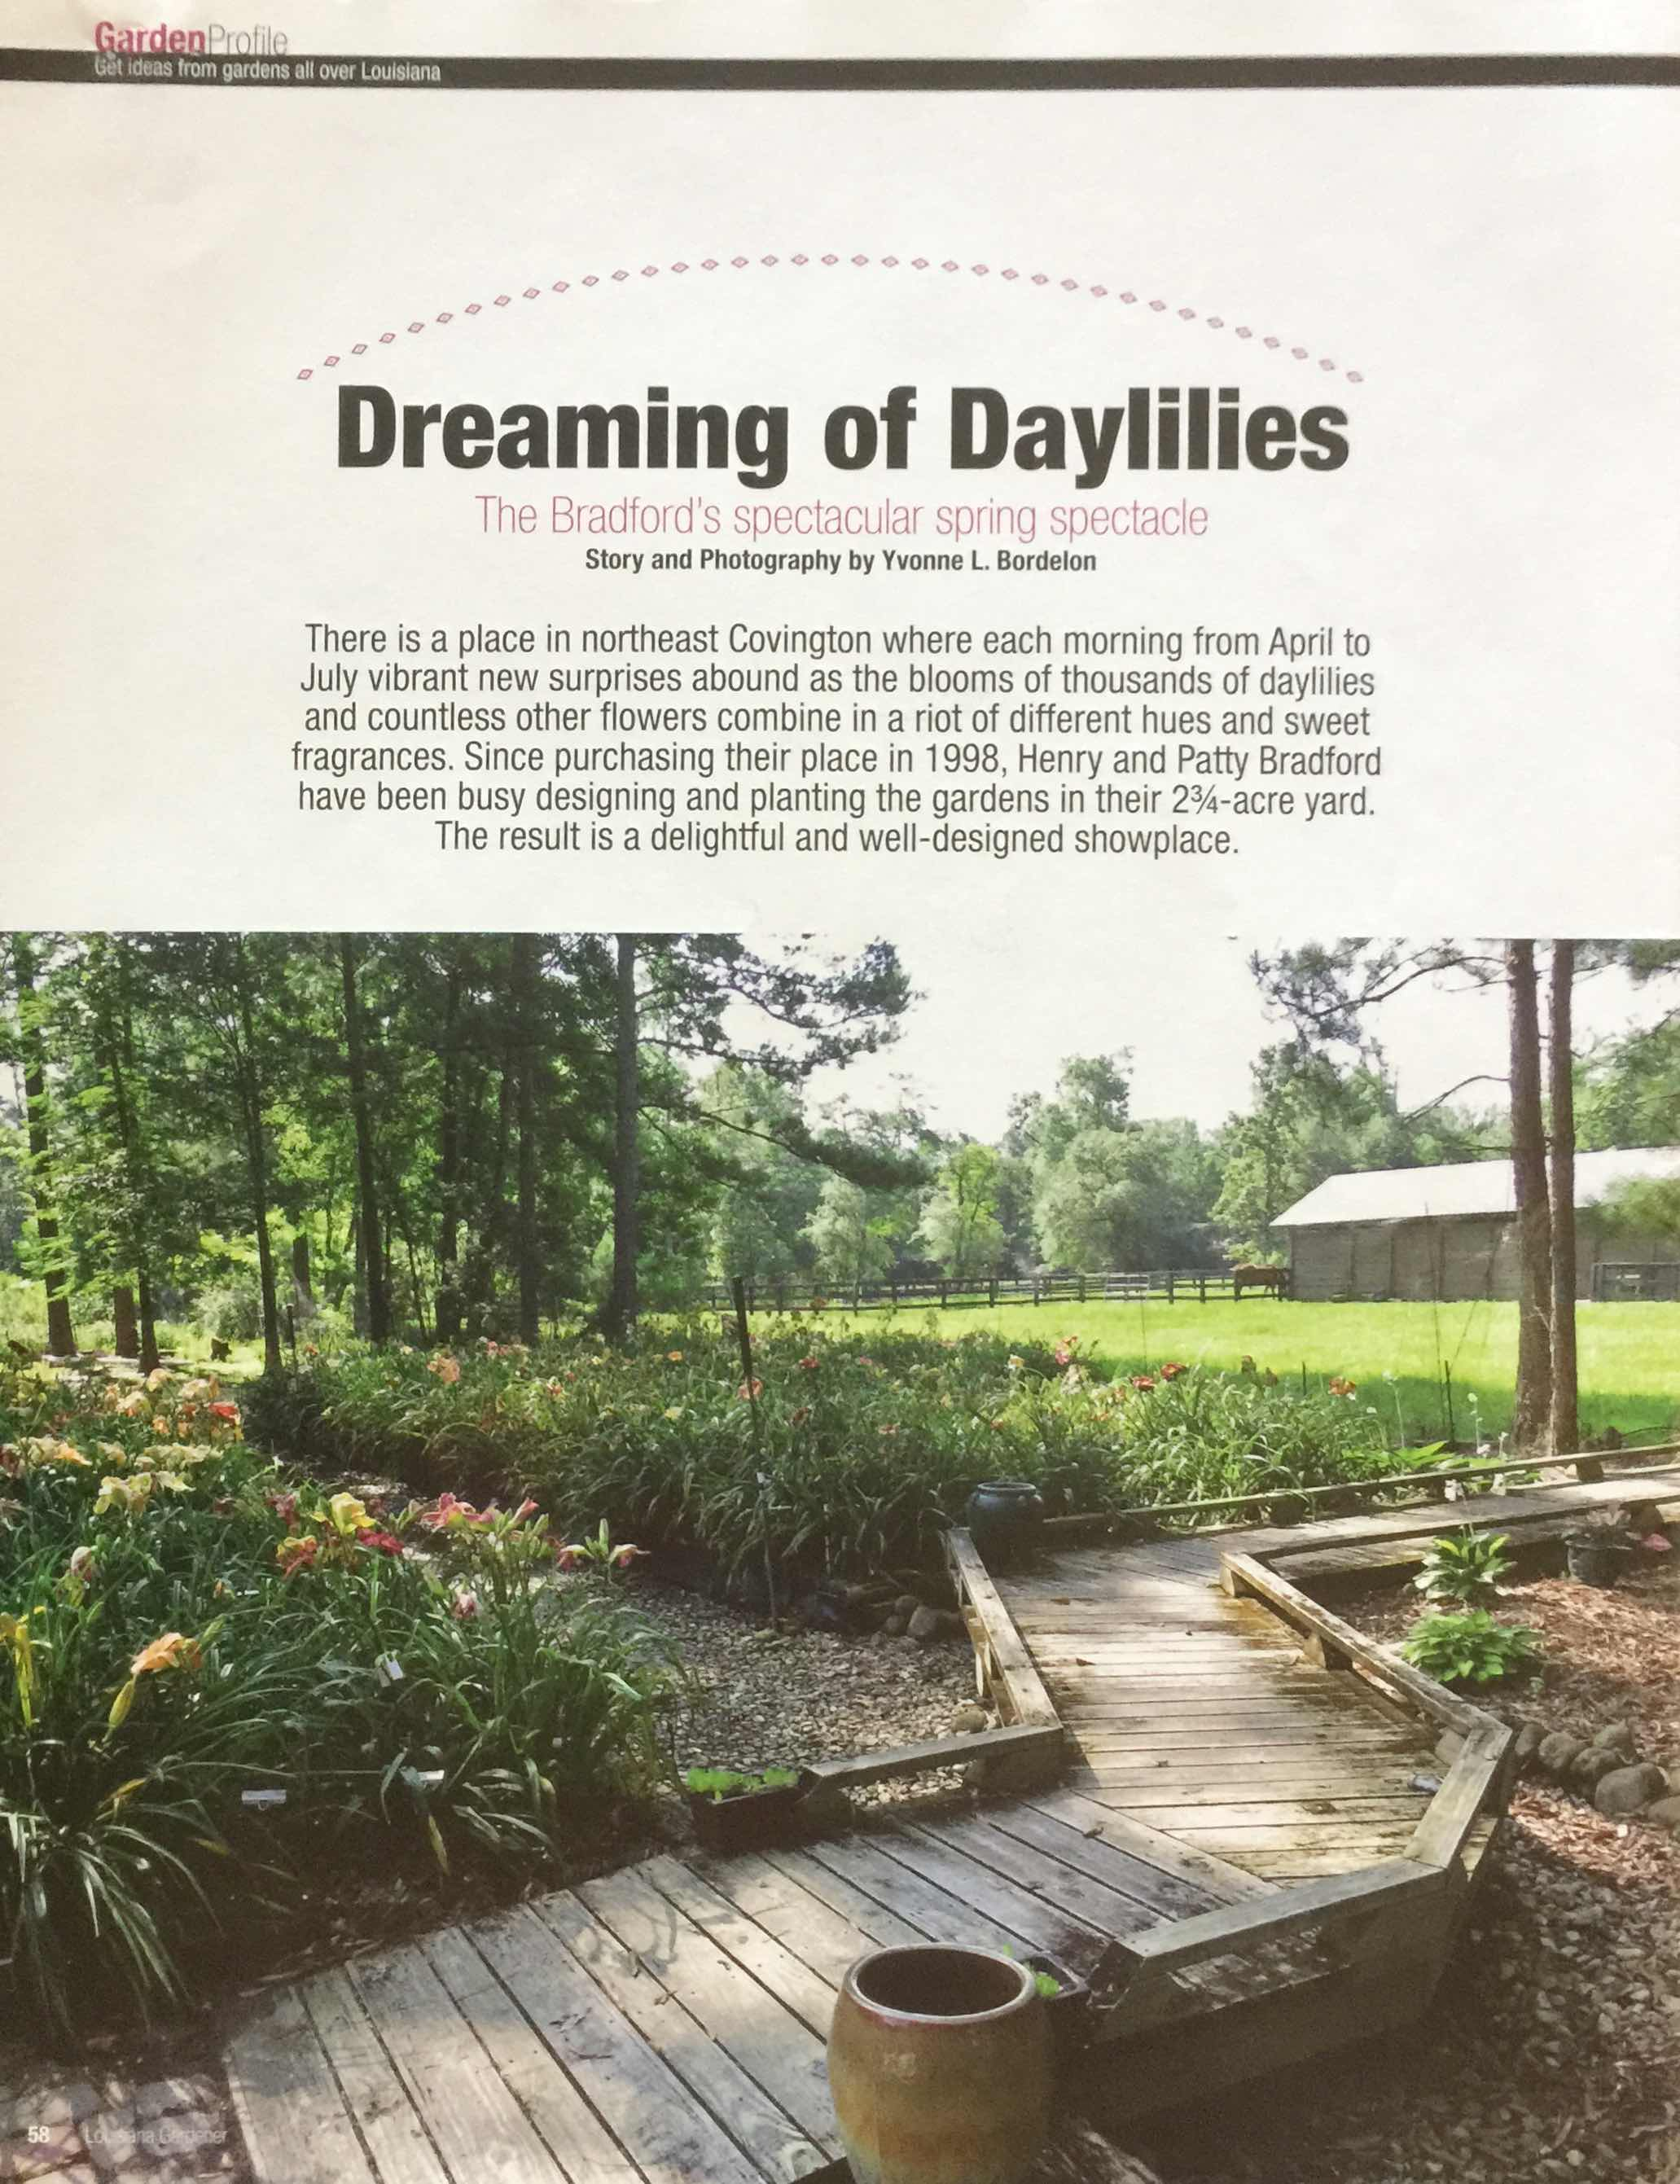 Dreaming of Daylilies_Page_1.jpg